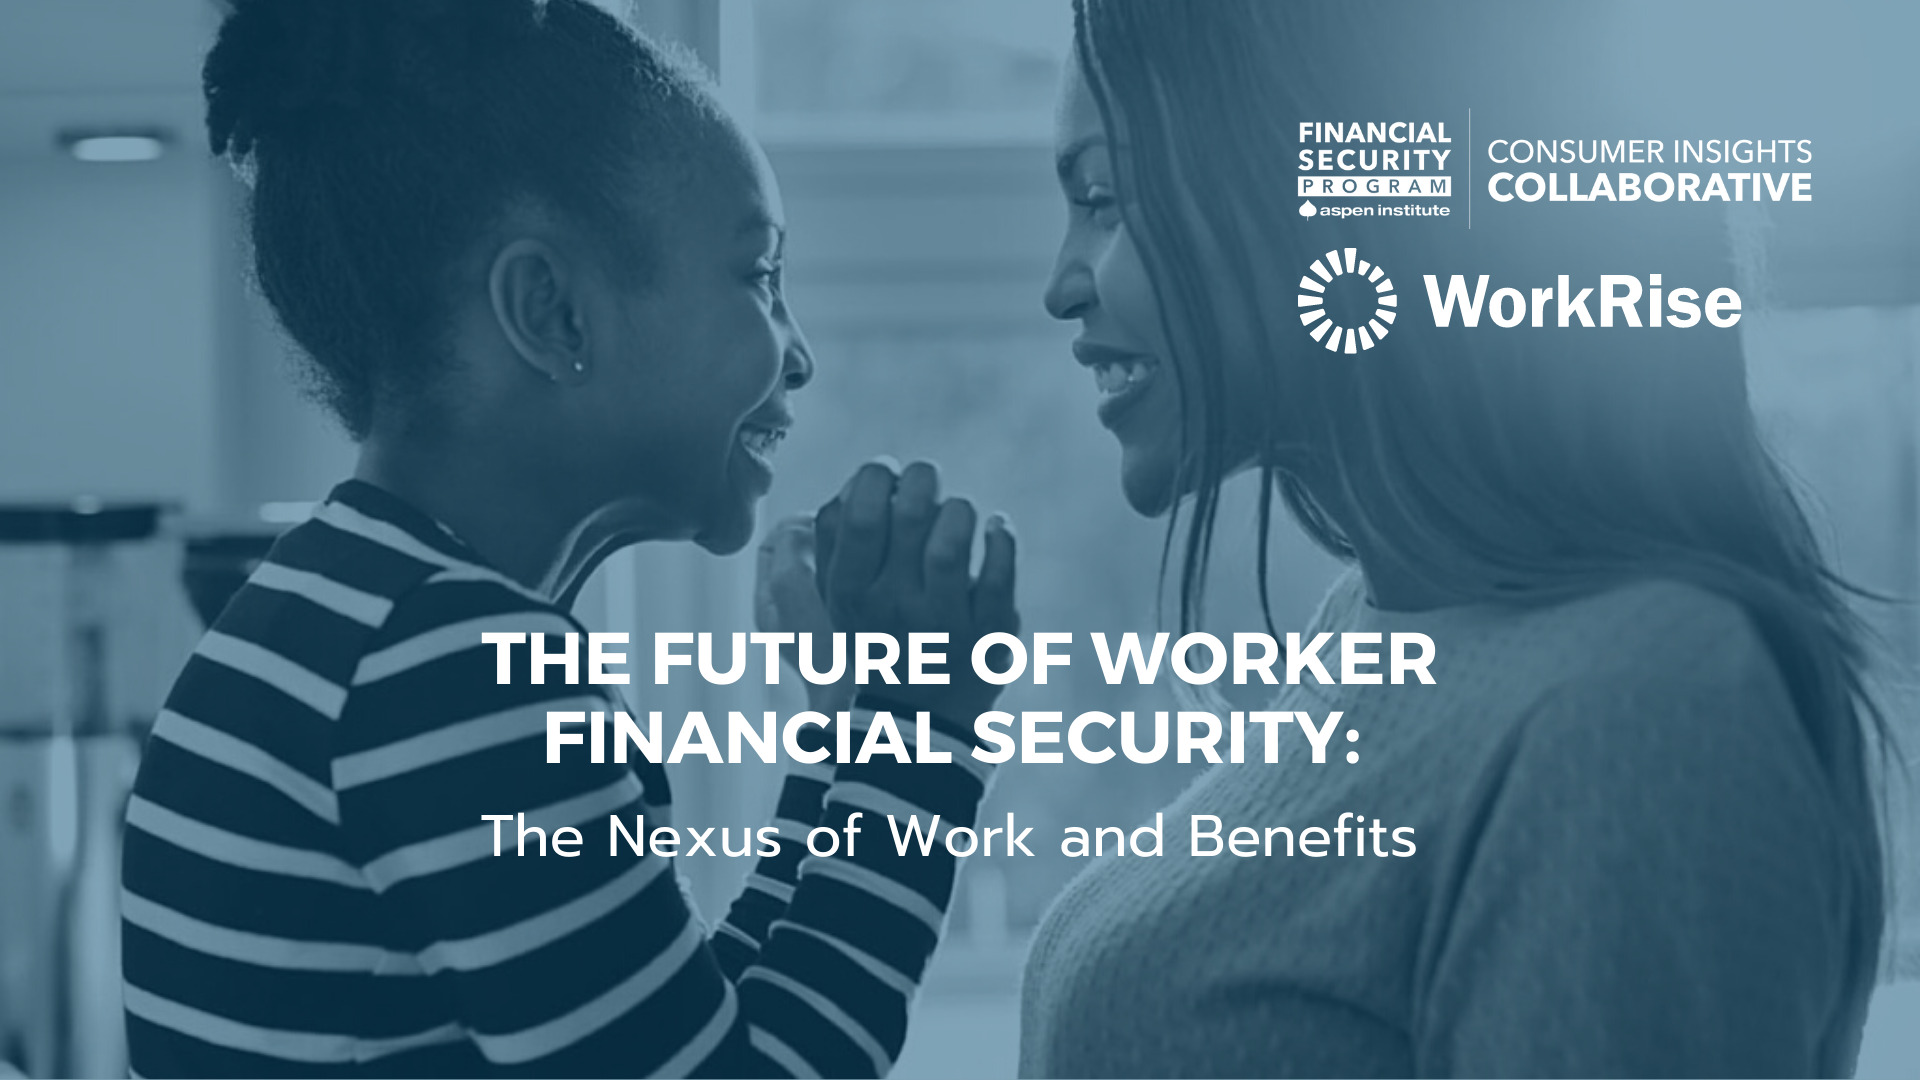 The Future of Worker Financial Security: The Nexus of Work and Benefits